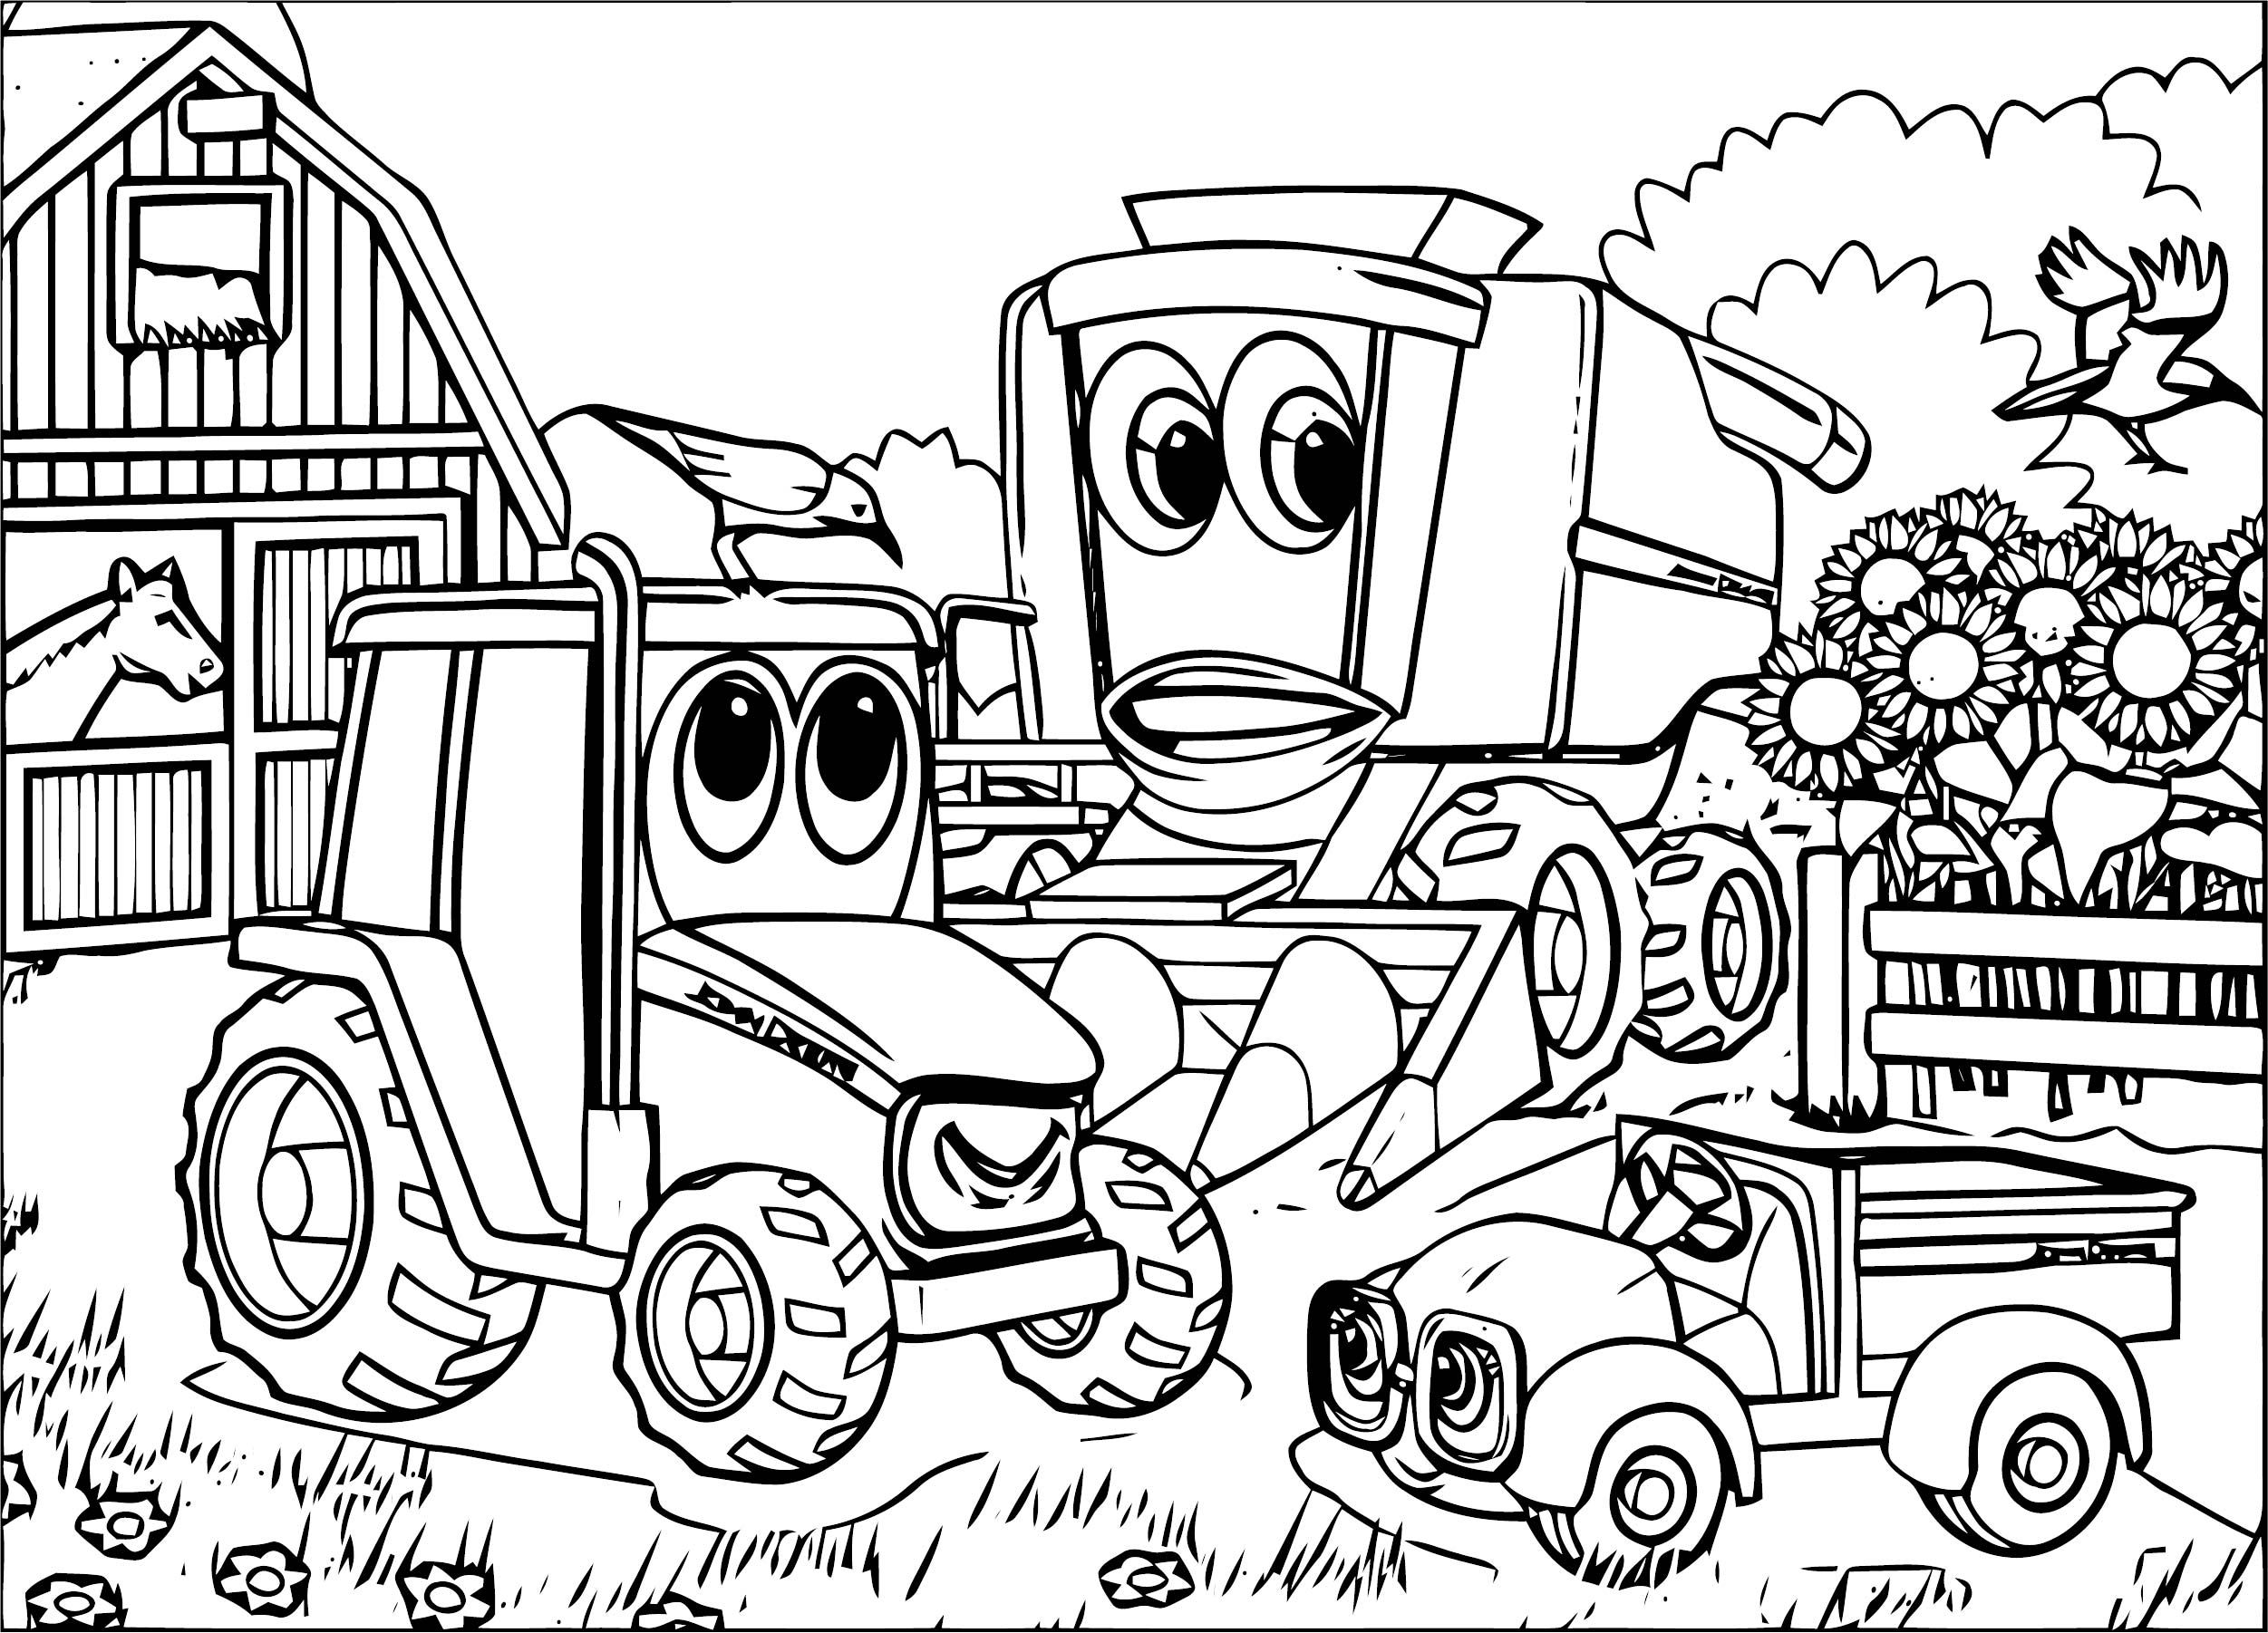 tractor colouring pictures tractor coloring pages to download and print for free tractor colouring pictures